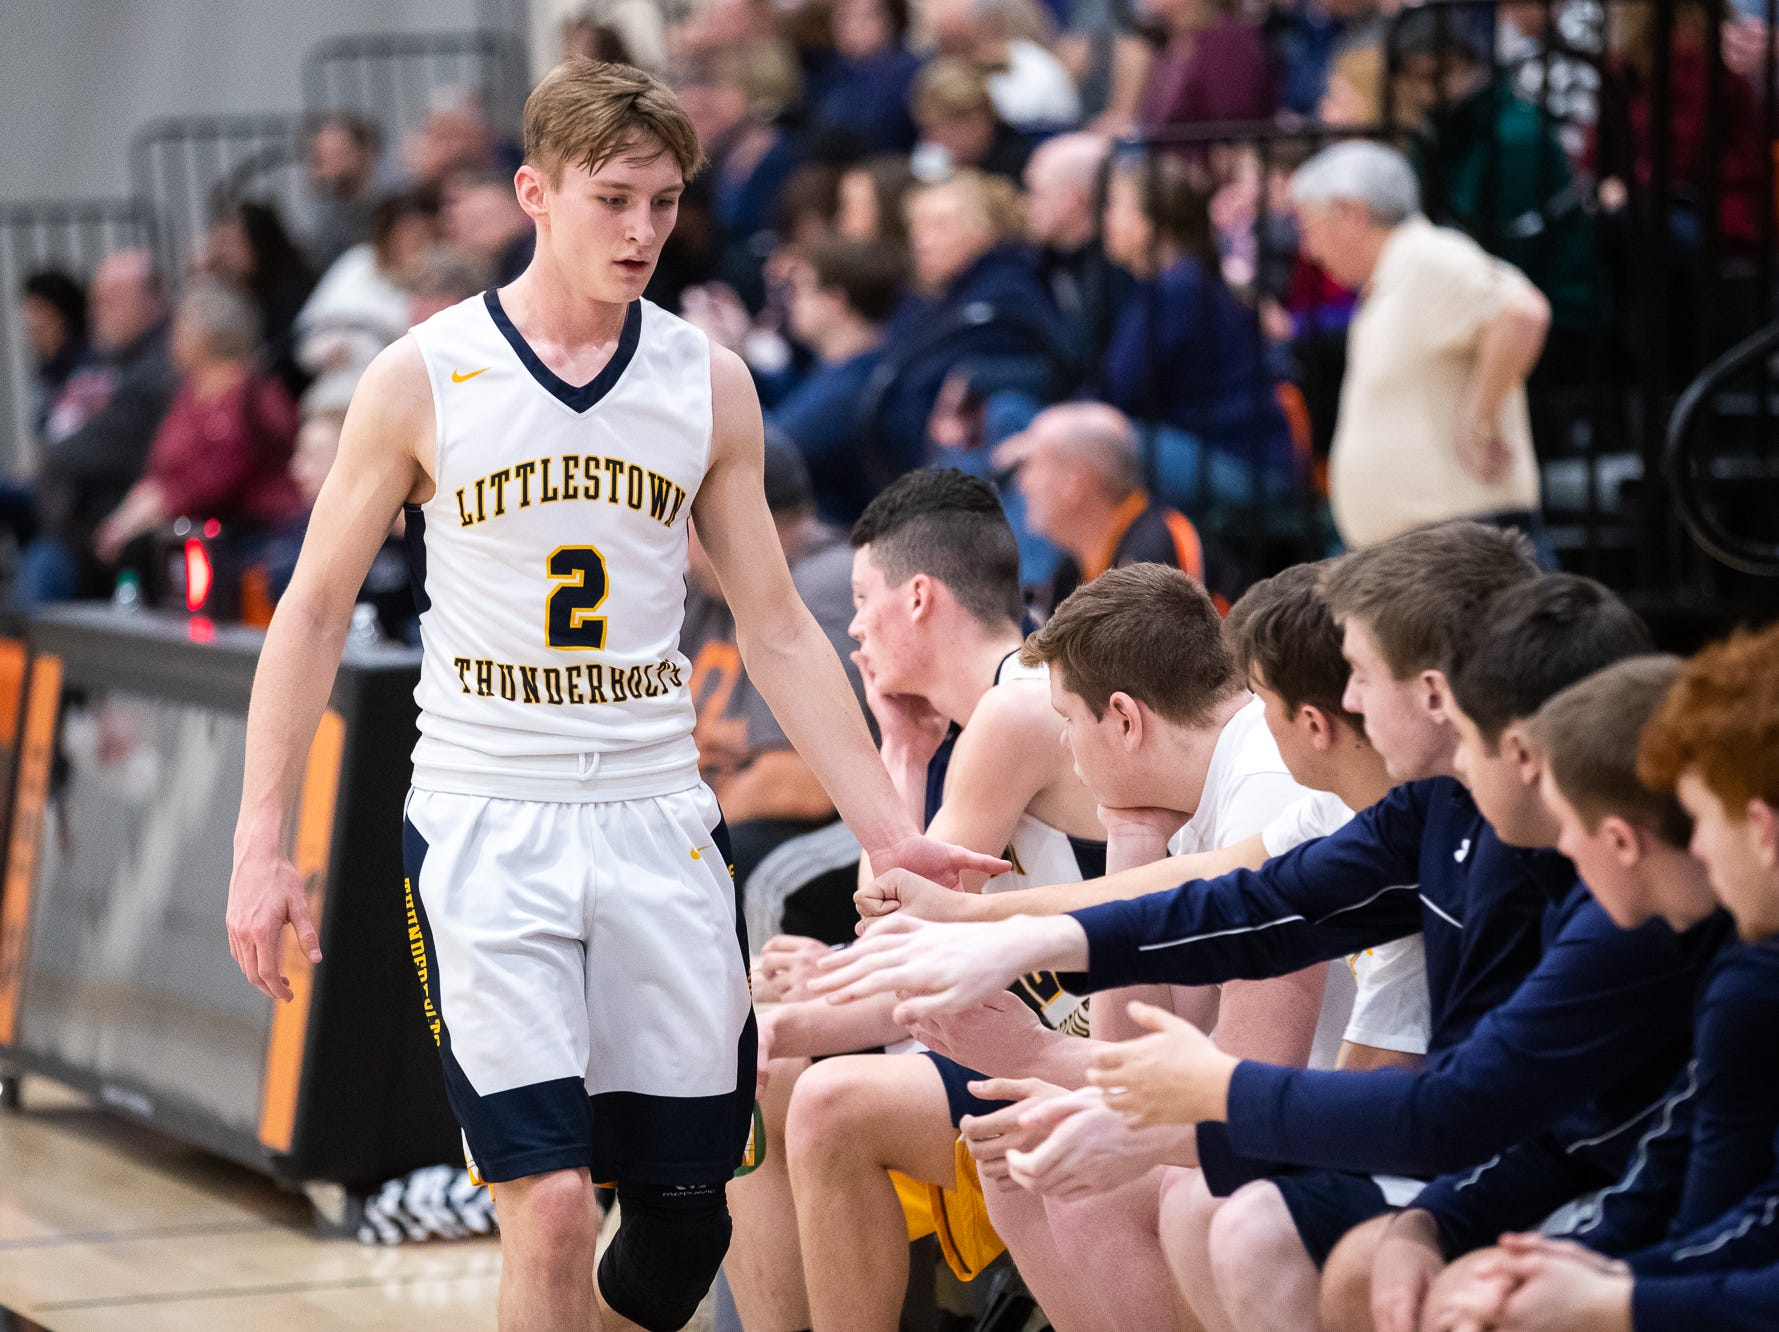 Littlestown's Jakob Lane (2) shakes hands with teammates while coming off the field during the first half of the YAIAA boys' basketball quarterfinals between Littlestown and West York, Saturday, Feb. 9, 2019, at Central York High School. West York led Littlestown 33-31 at the half.